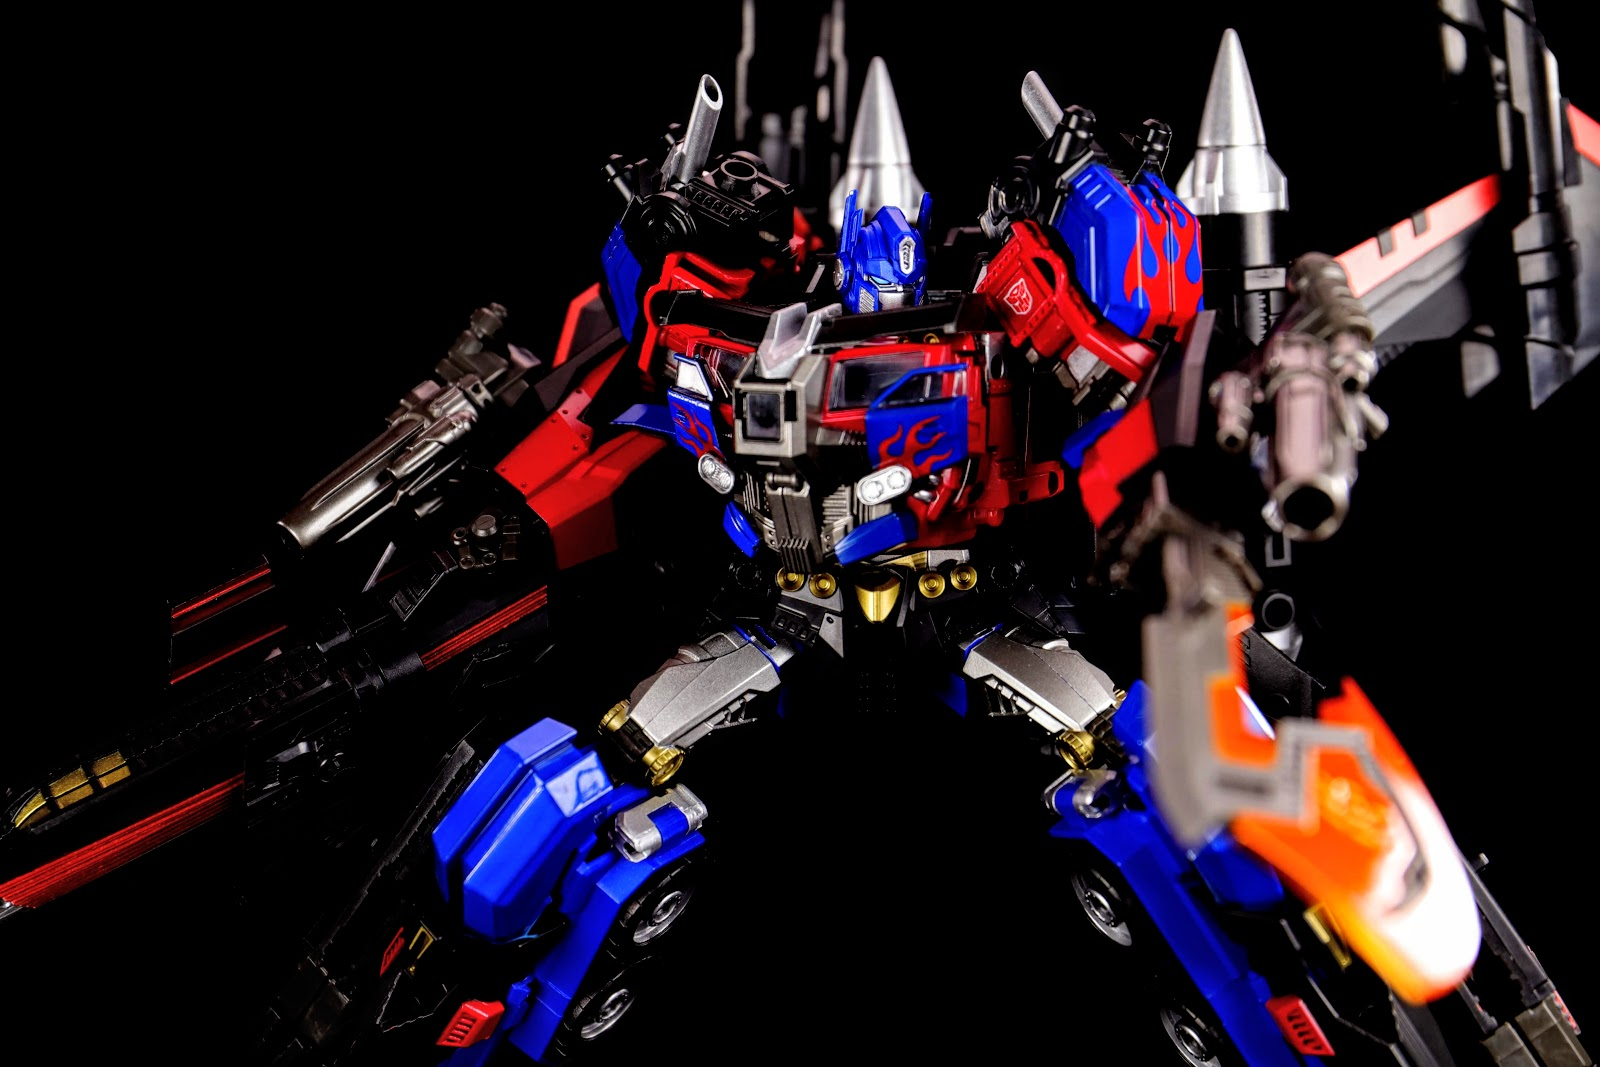 Perfact Effect PE-DX10 Jetforce Review Commander Jetpower Optimus Prime